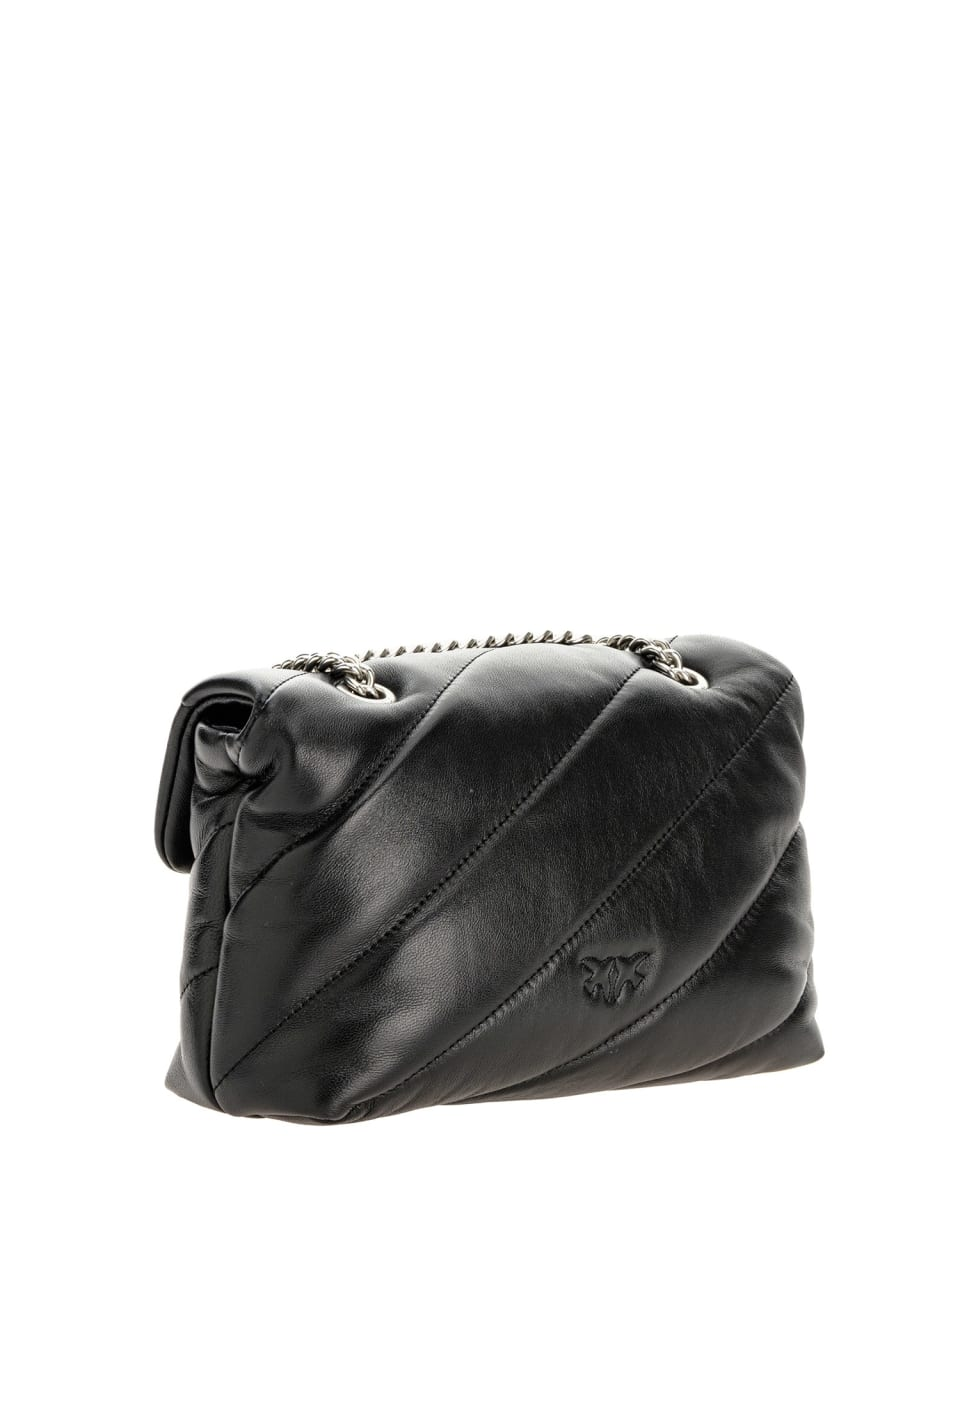 Mini Love Bag Puff Maxi Quilt in nappa leather - Pinko